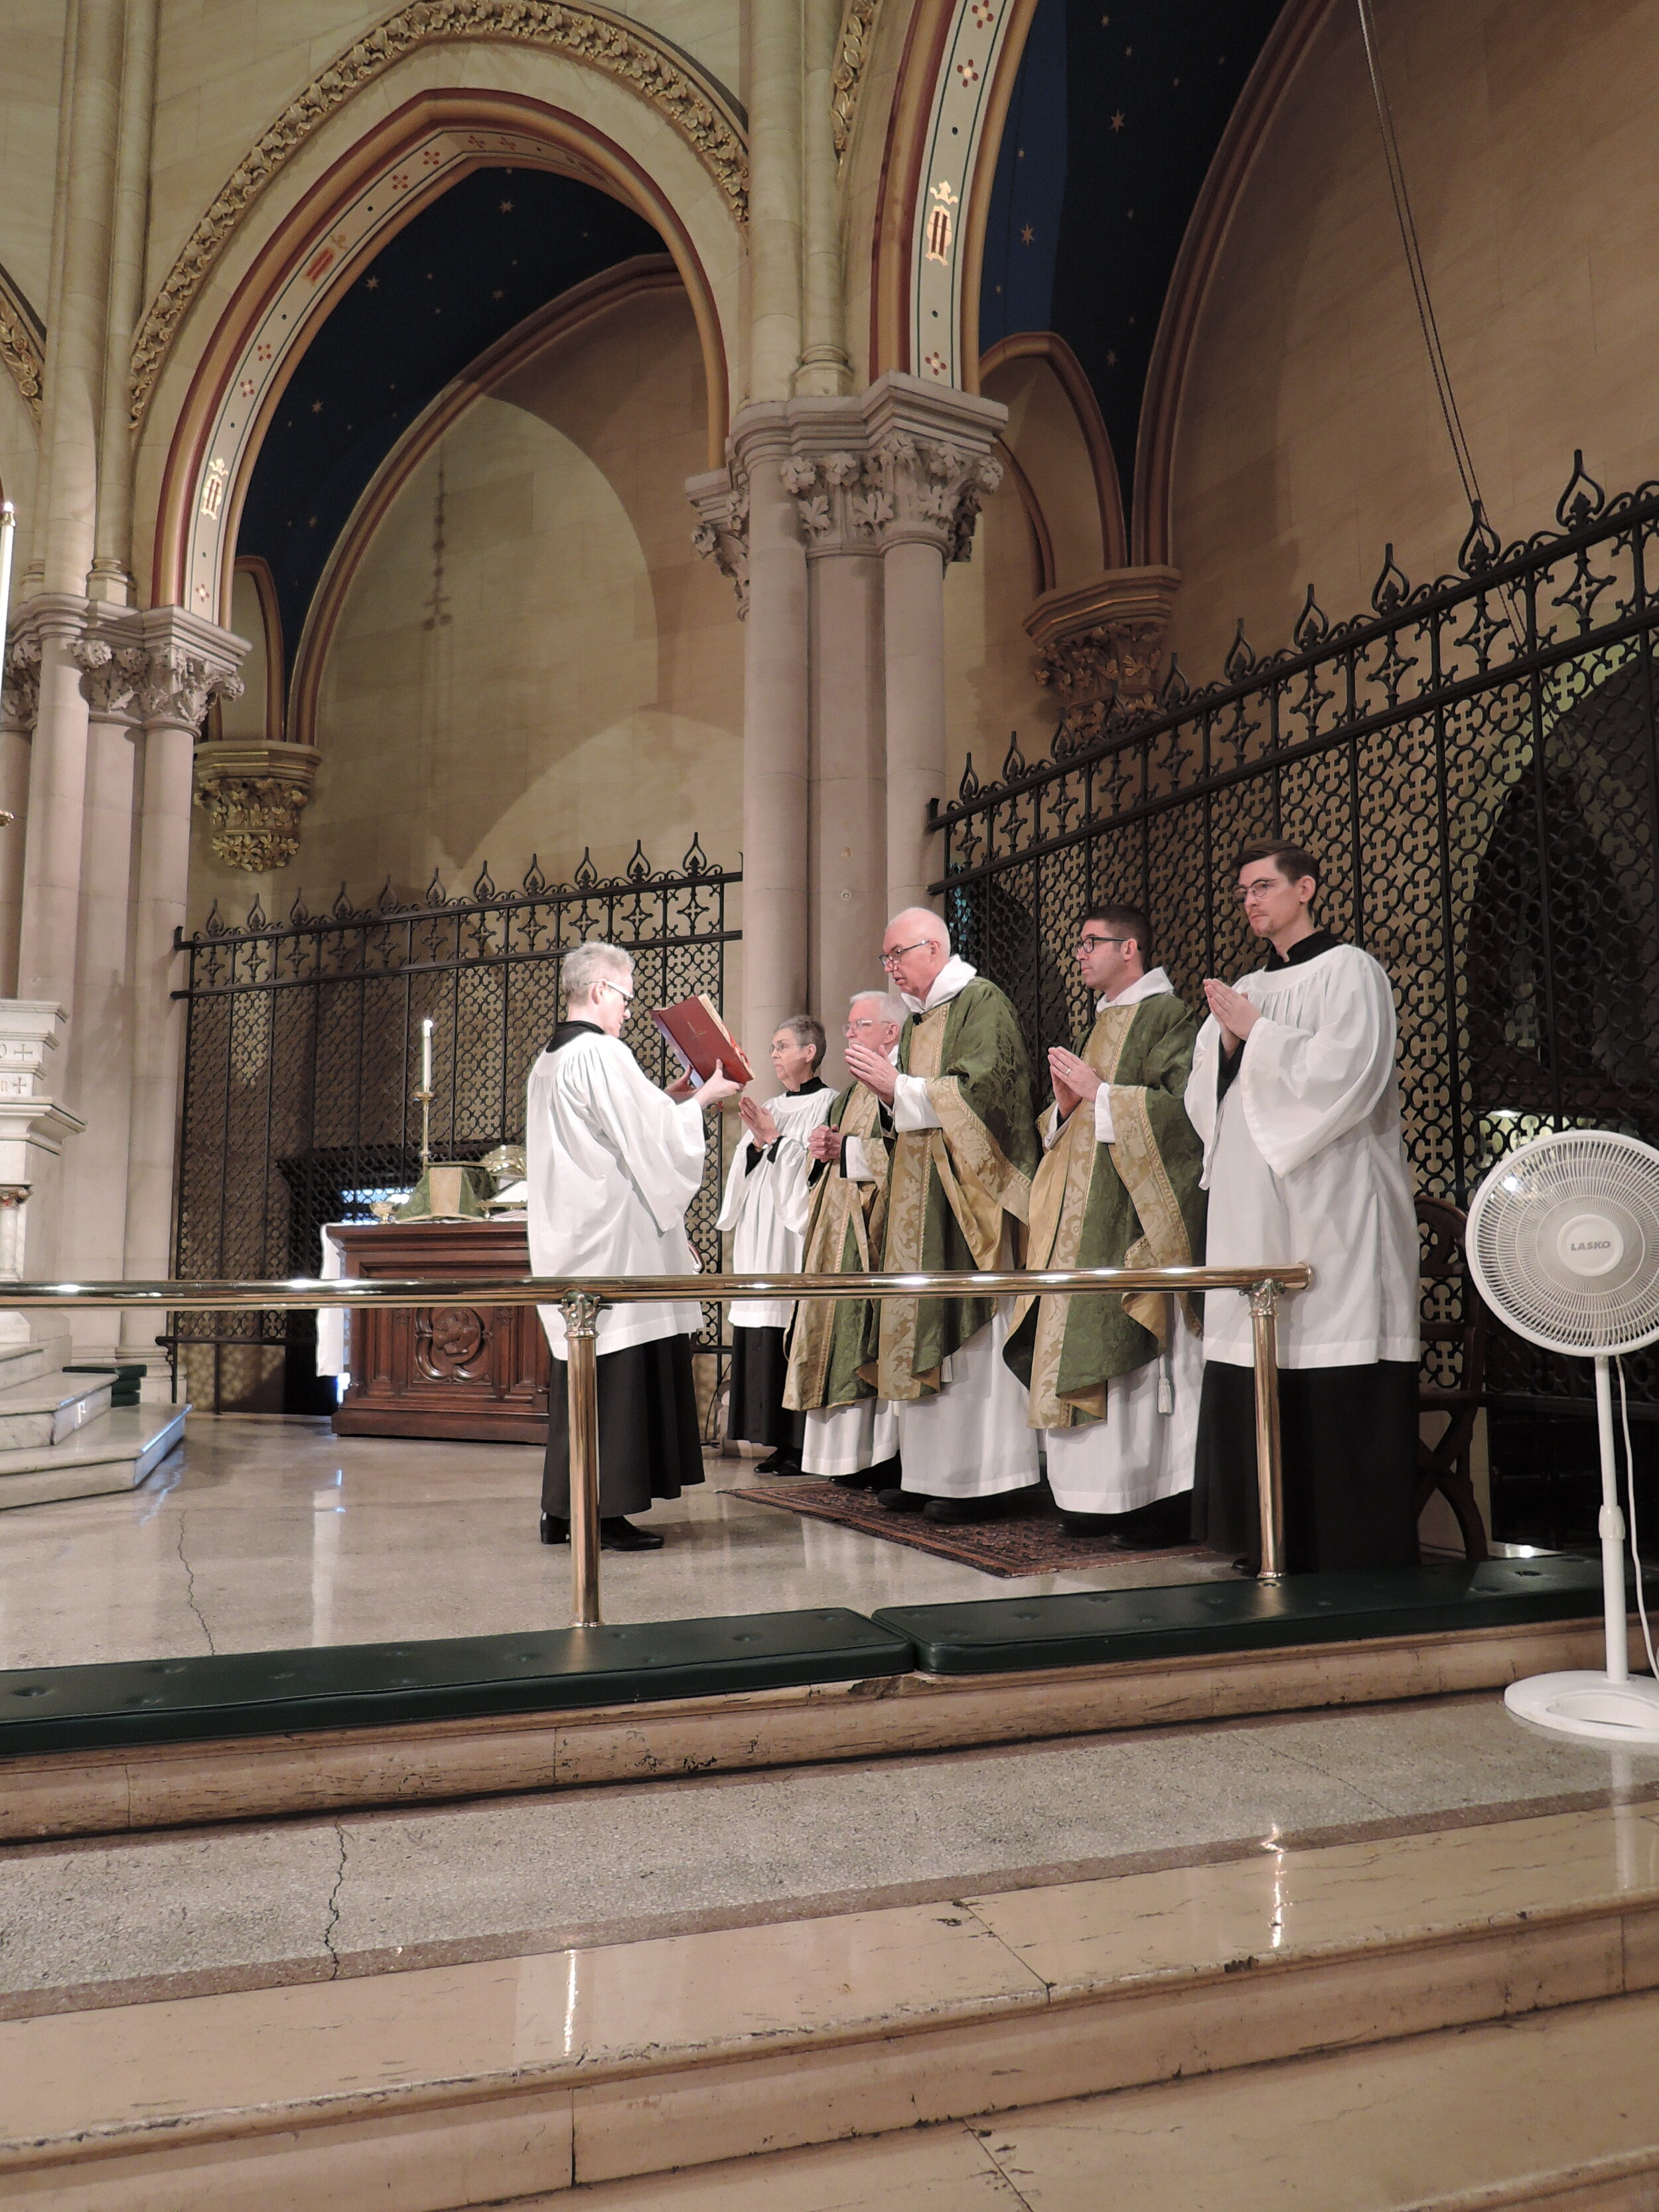 The concluding collect of the prayers of the people has just been prayed by the celebrant.  Photo:  Grace Mudd